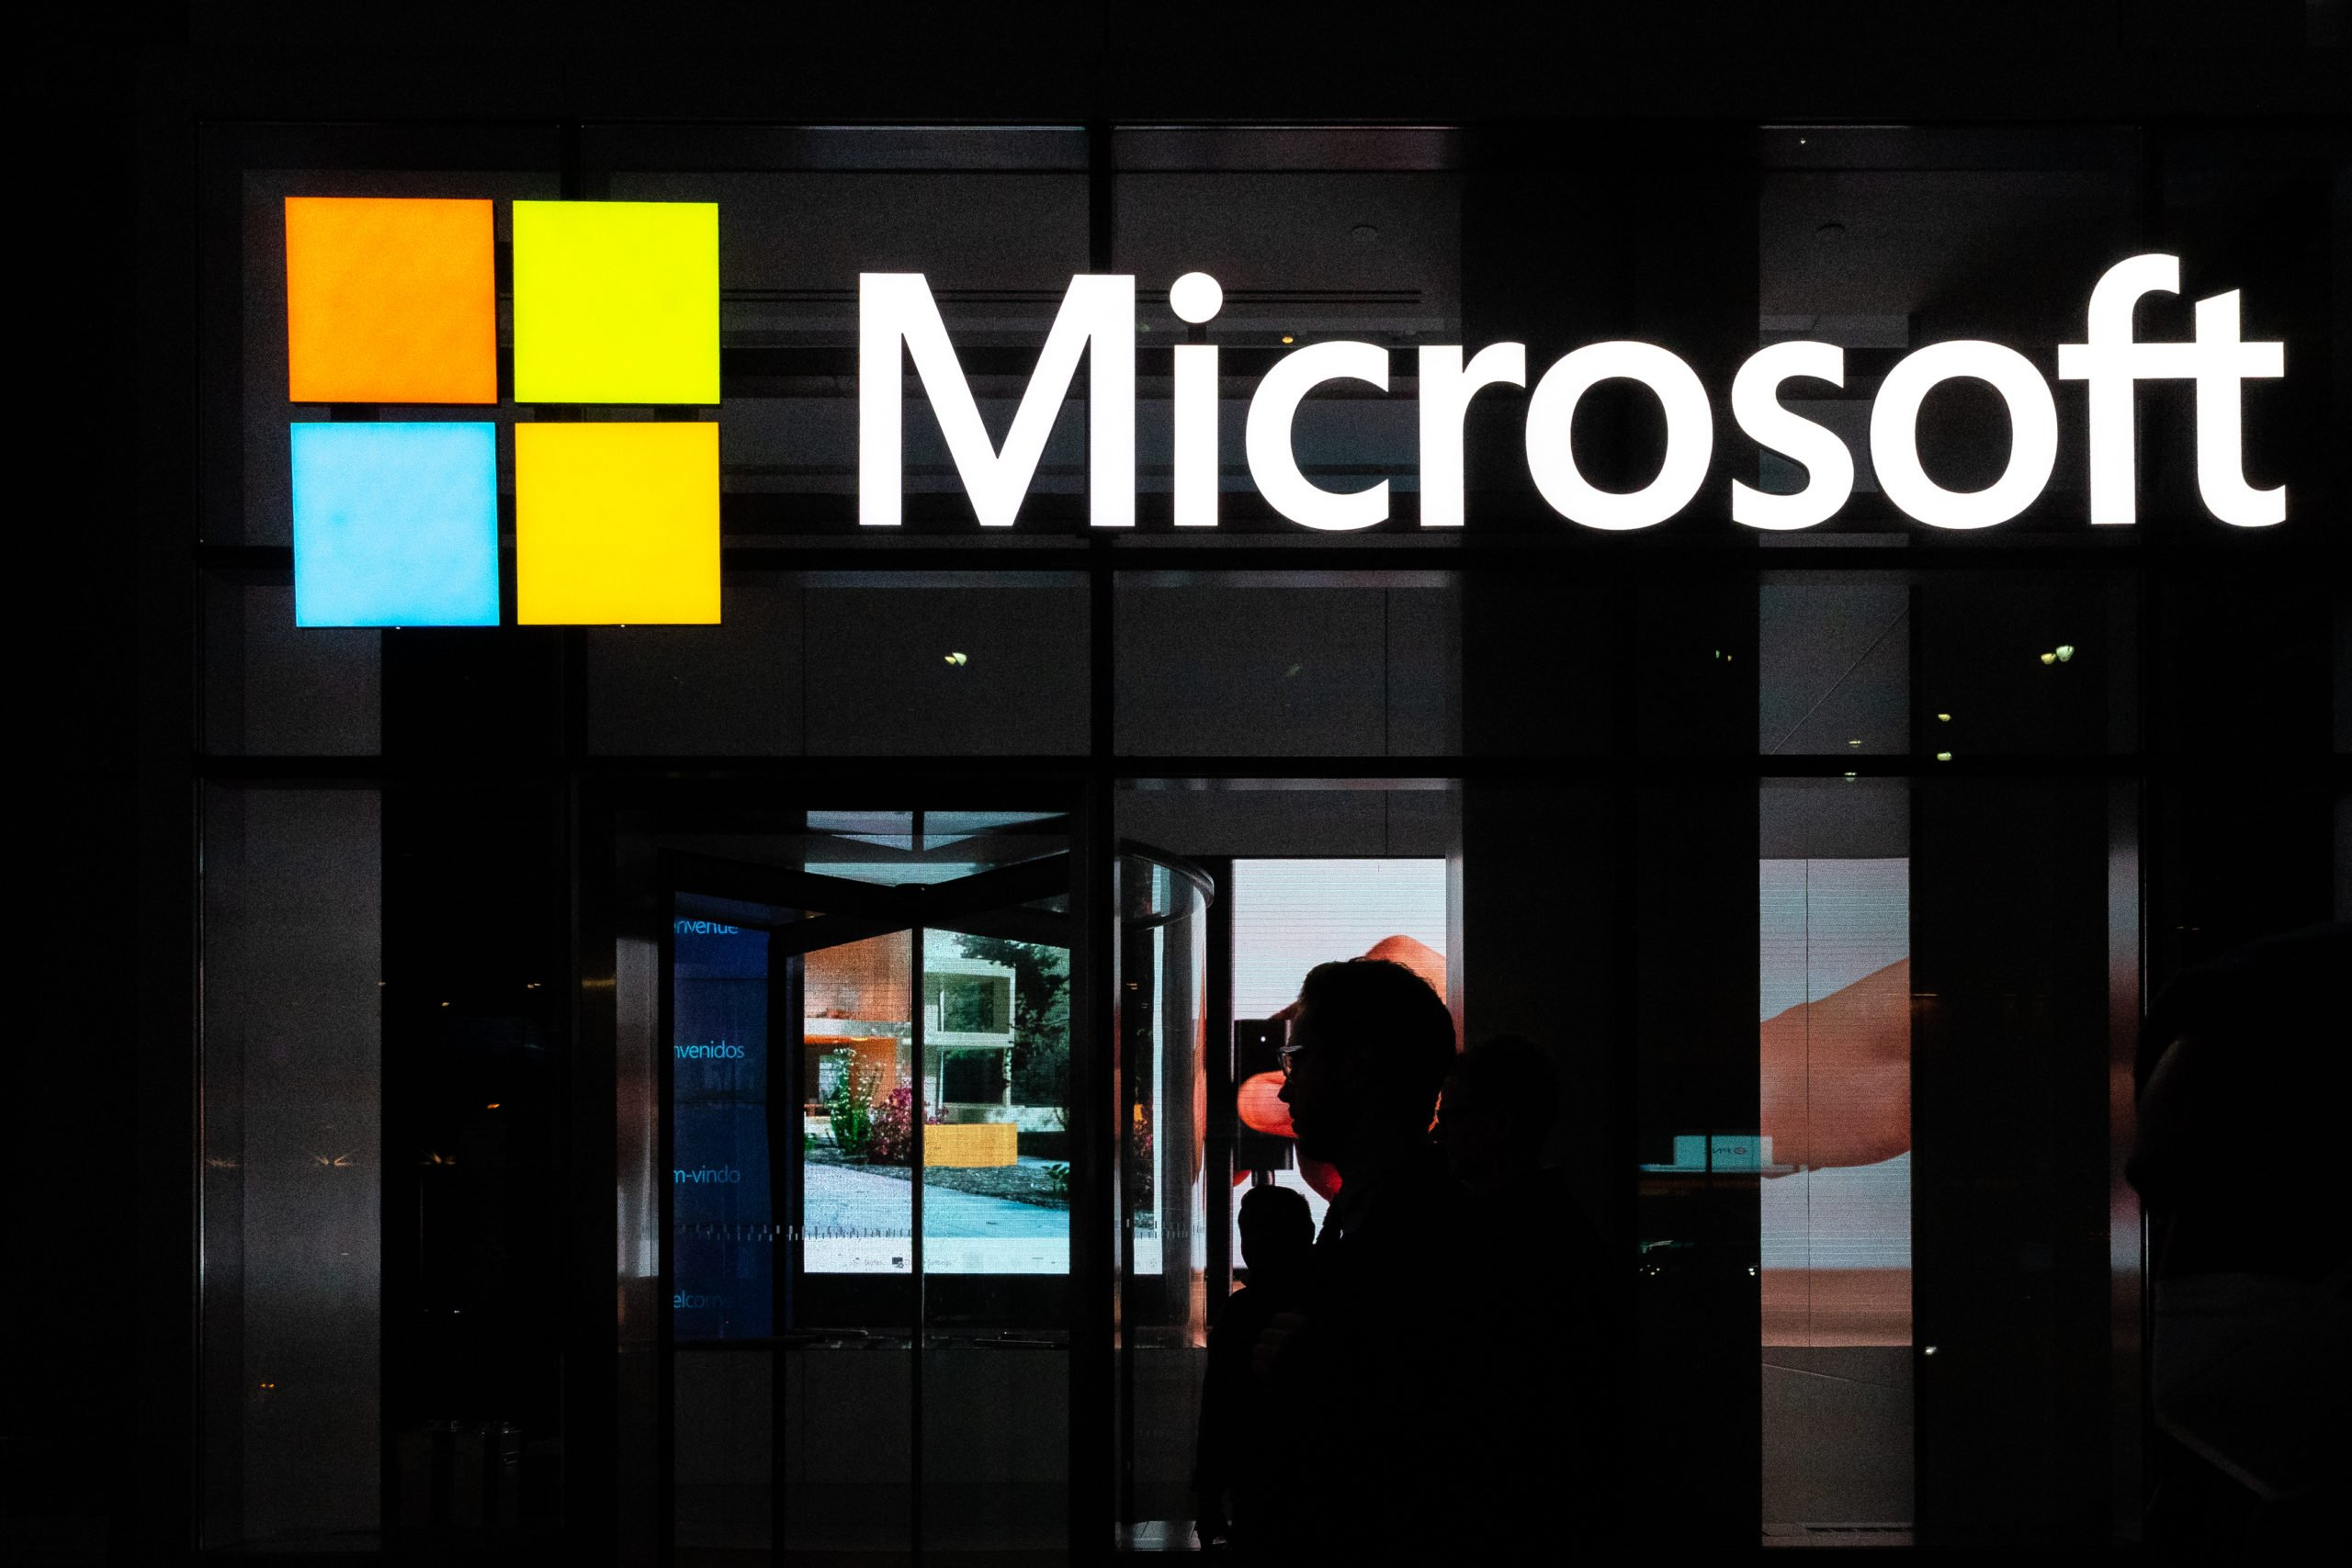 NEW YORK, NY - MARCH 13: A signage of Microsoft is seen on March 13, 2020 in New York City. Co-founder and former CEO of Microsoft Bill Gates steps down from Microsoft board to spend more time on the Bill and Melinda Gates Foundation. (Photo by Jeenah Moon/Getty Images)